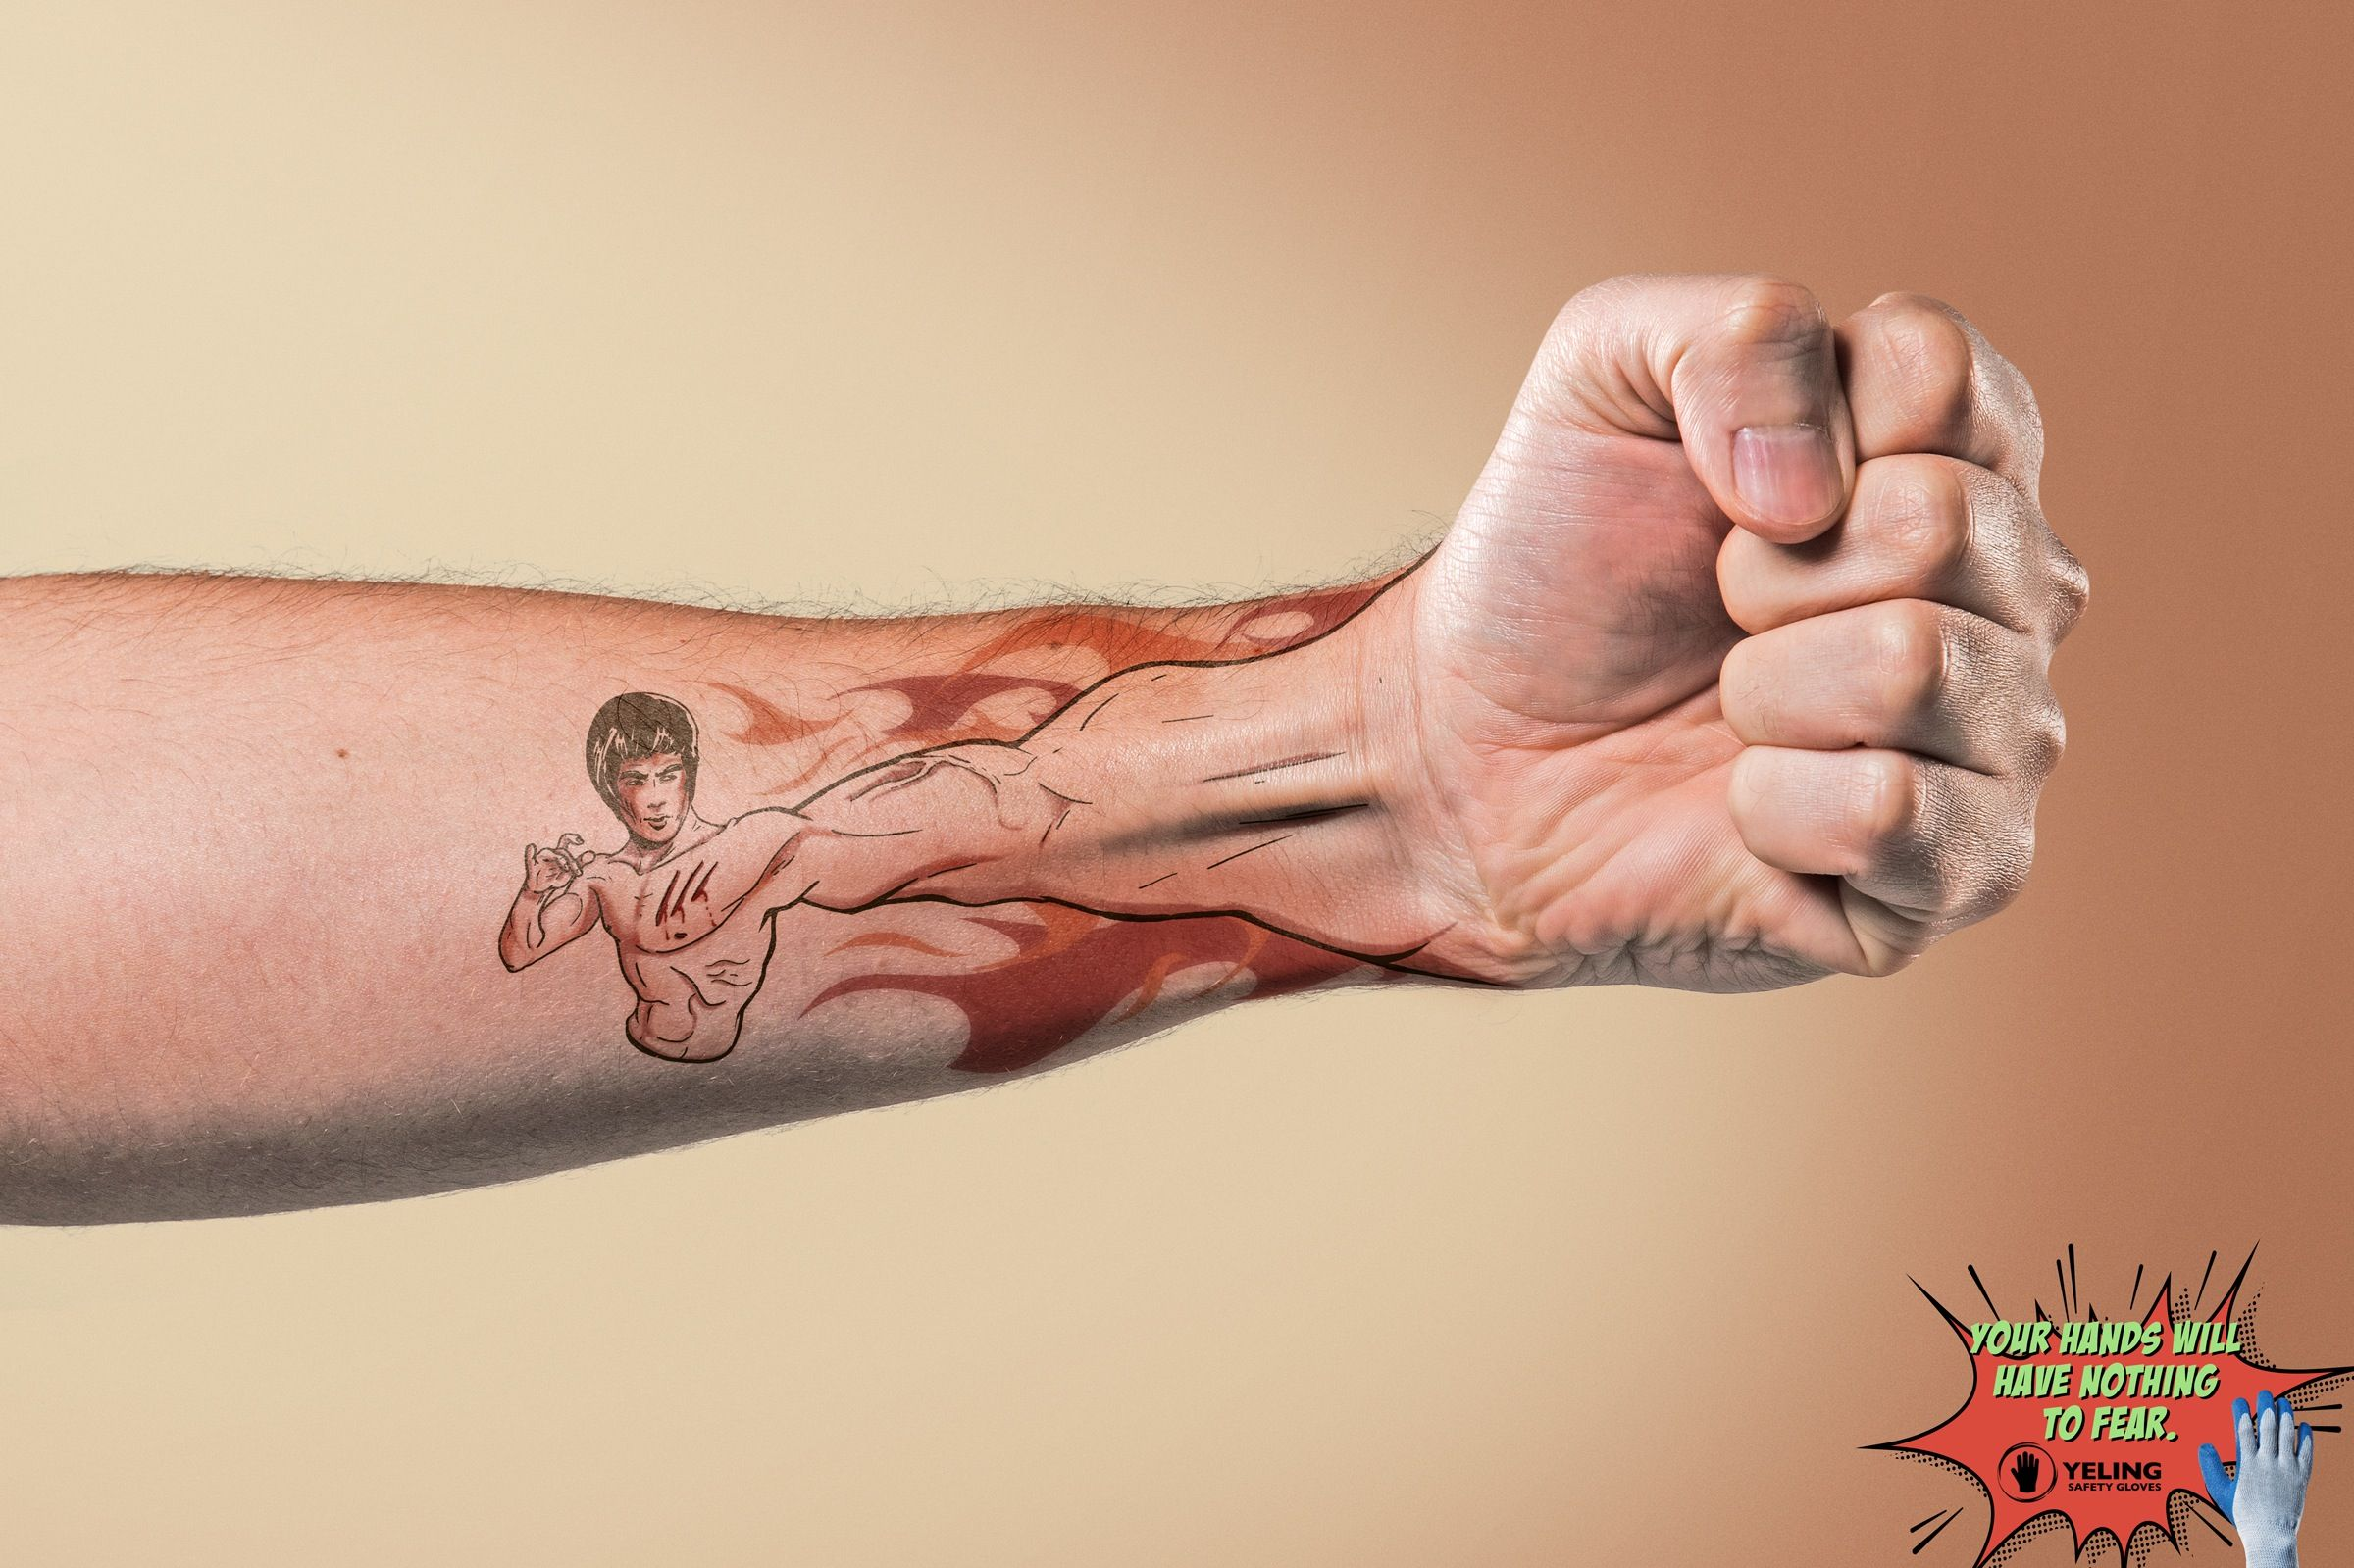 Cool tattoo designs for your hand yeling safety gloves arm   広告  pinterest  advertising